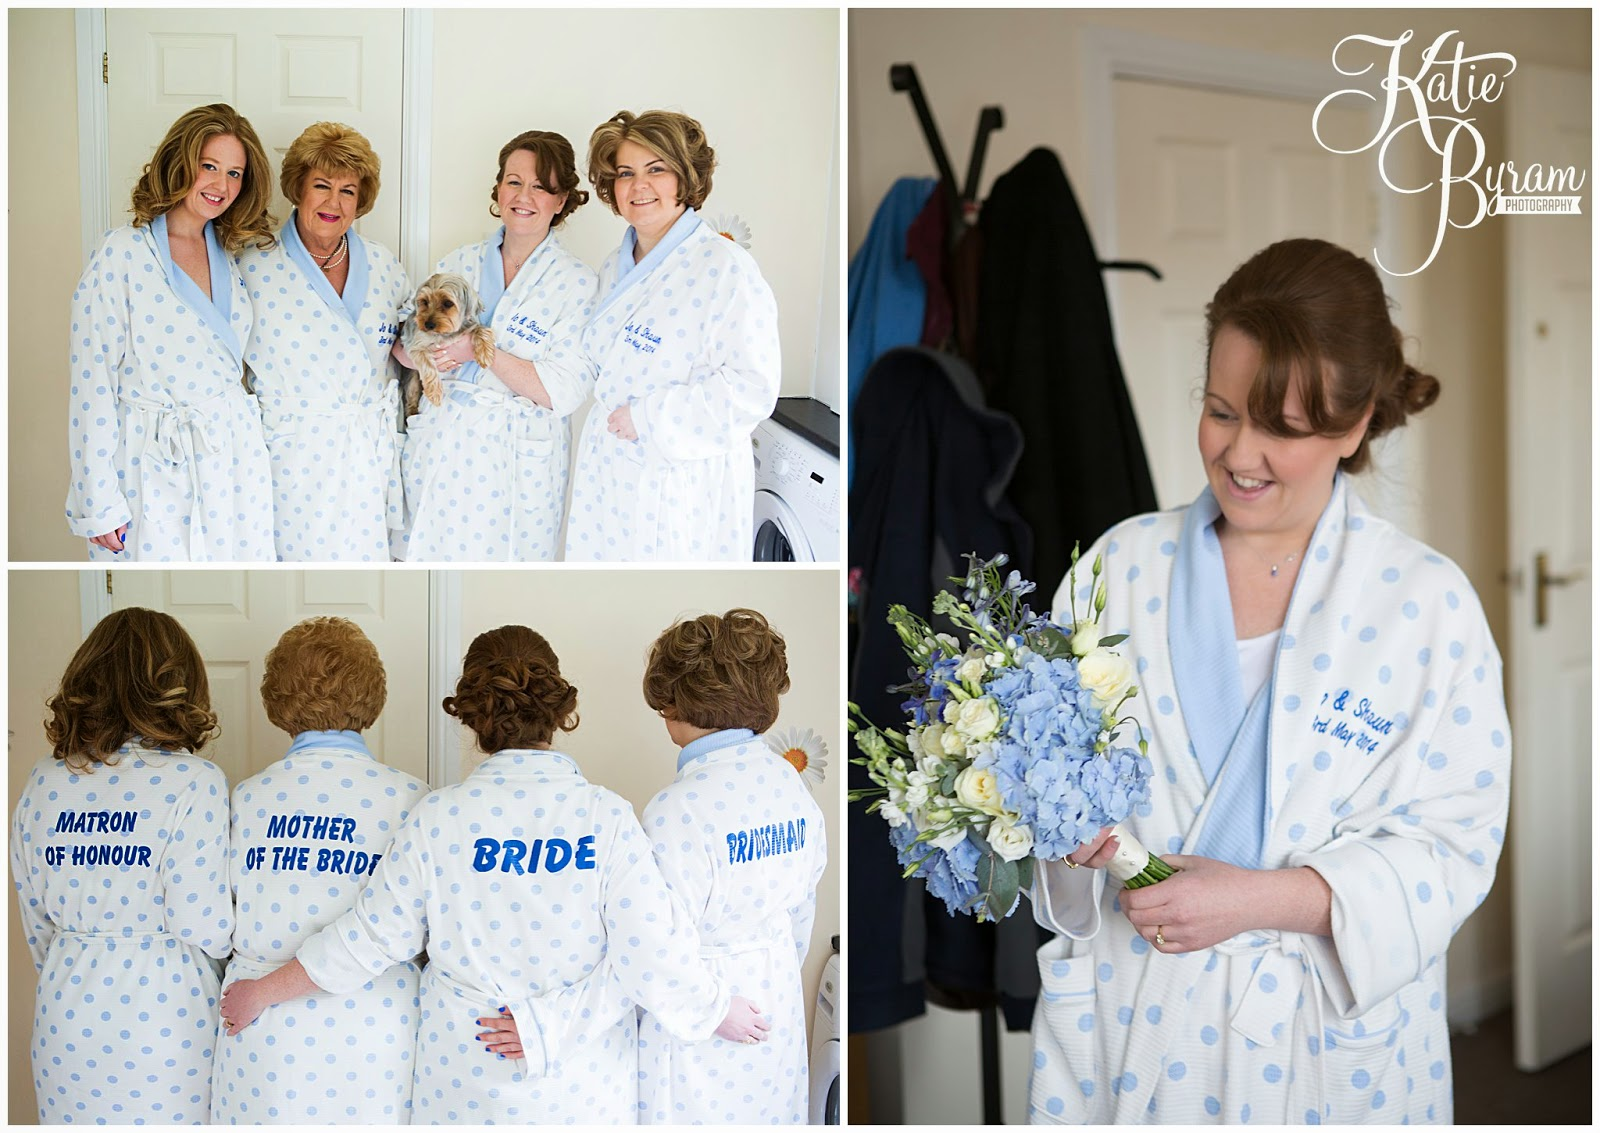 wedding dressing gowns, personalised dressing gowns, bridesmaids bath robes, bridesmaids dressing gowns, minsteracres wedding, lord crewe arms wedding, dog at wedding, scoops and smiles, katie byram photography, ice cream van hire newcastle, newcastle wedding photography, relaxed wedding photography, quirky, 50